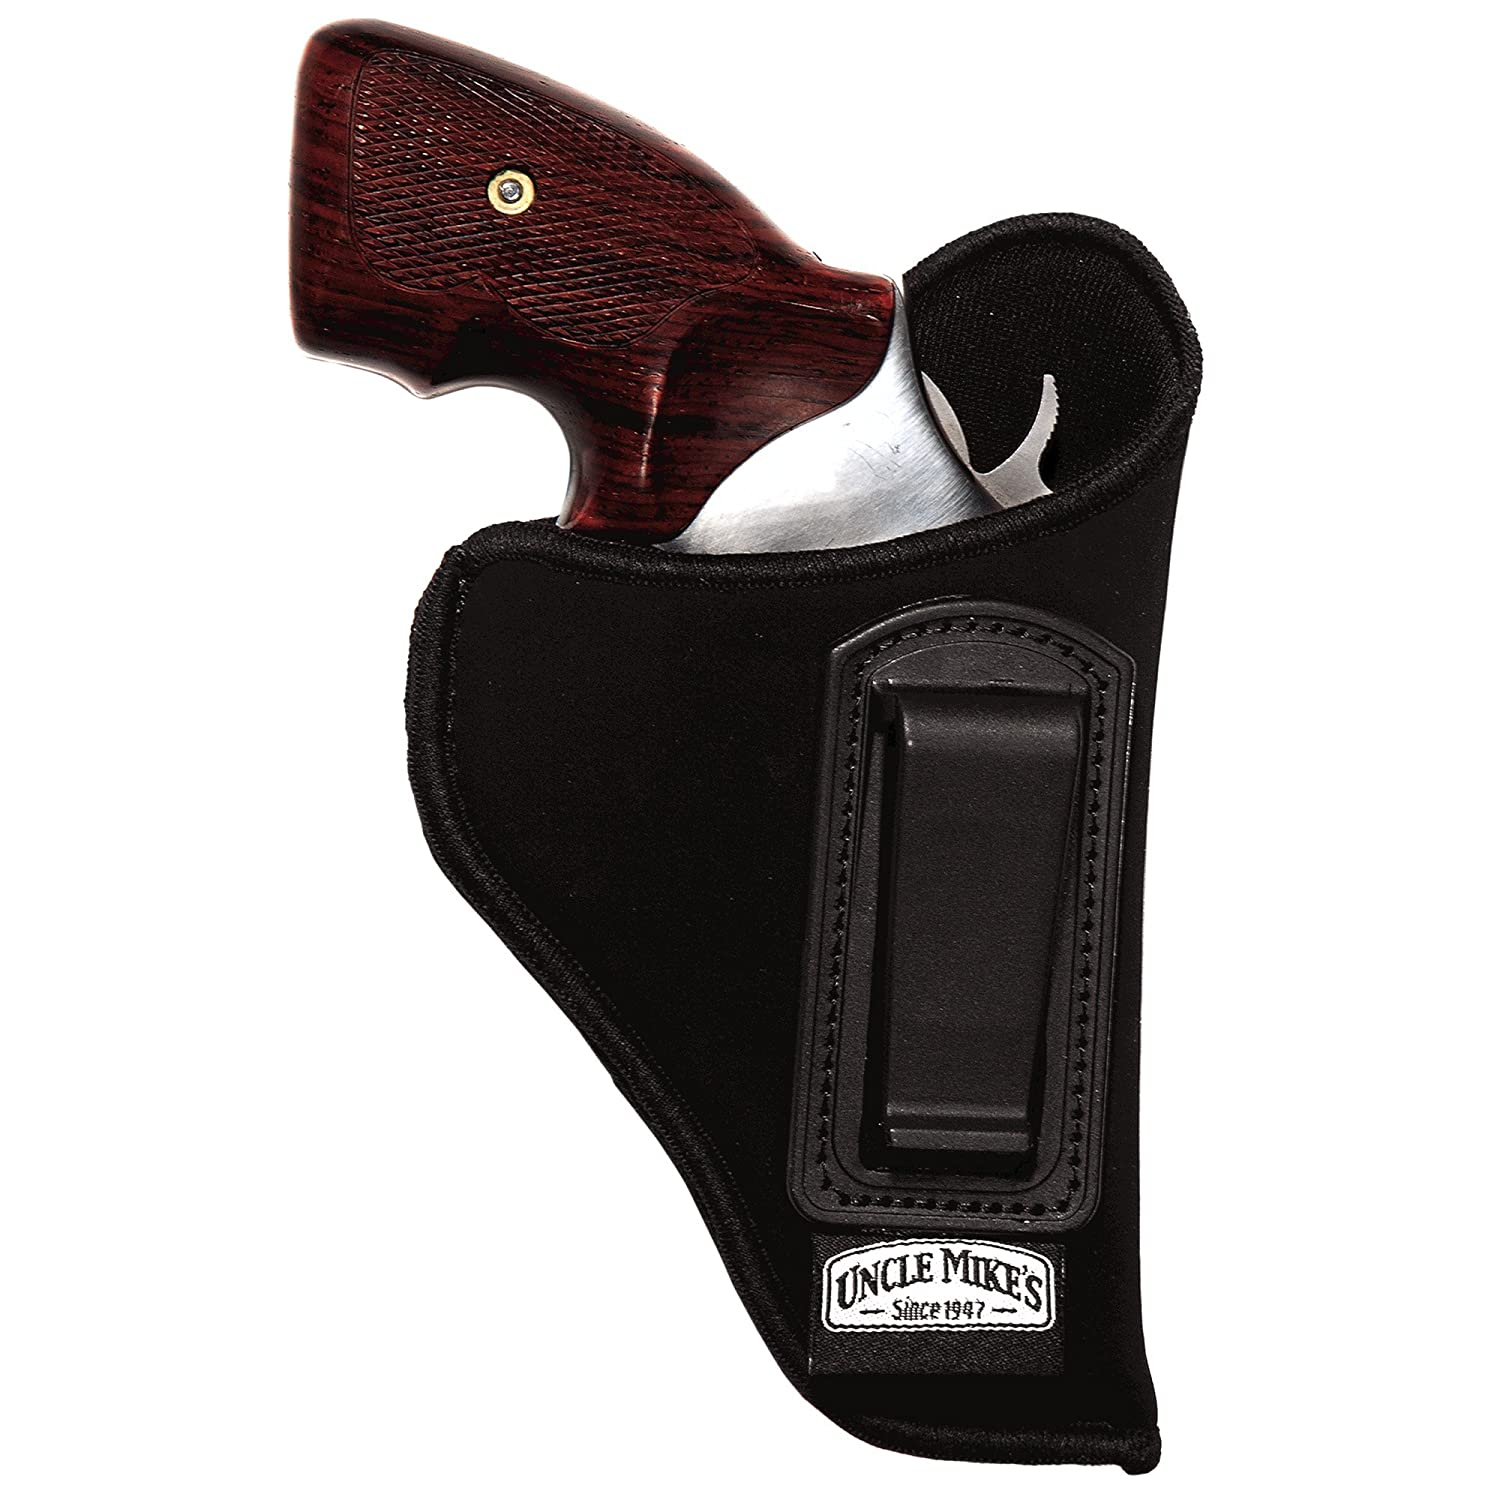 Uncle Mike's Off-Duty and Concealment Nylon OT ITP Holster Uncle Mike' s ot itp-25